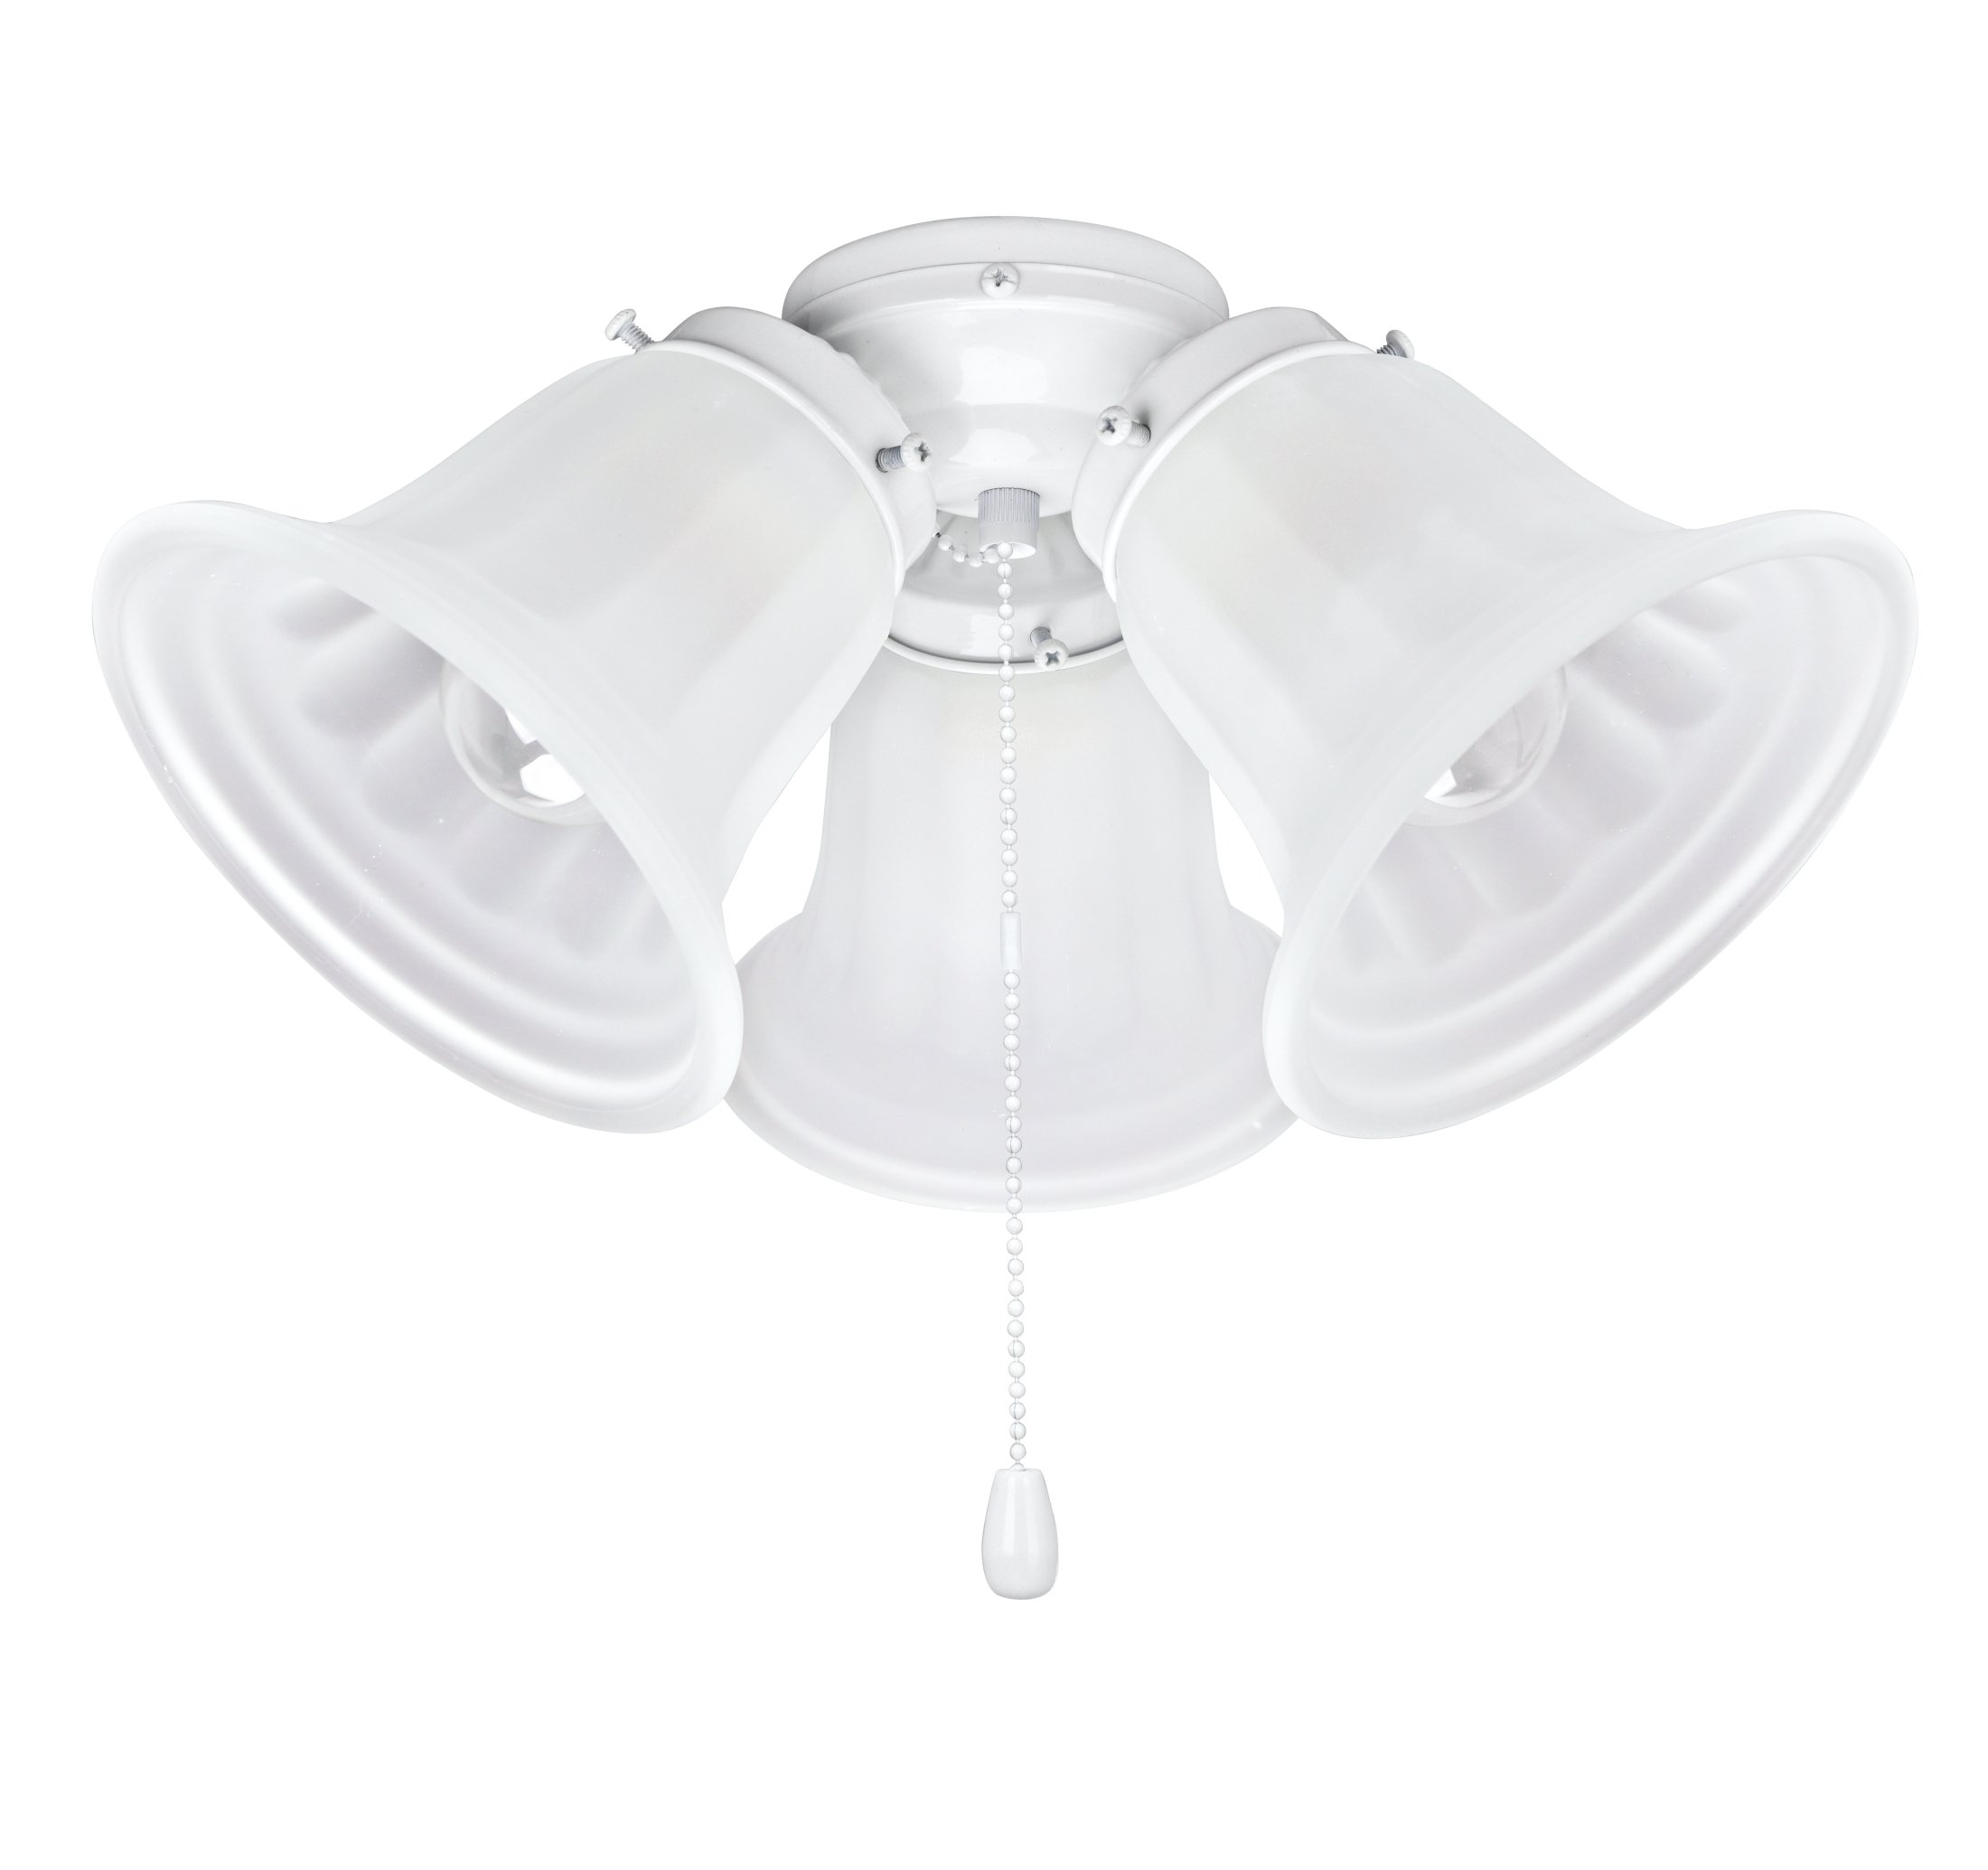 Aspen Creative 22002-21, Three Ceiling Fan Fitter Light Kit with Pull Chain, 5 1/2'' Diameter, Painted White